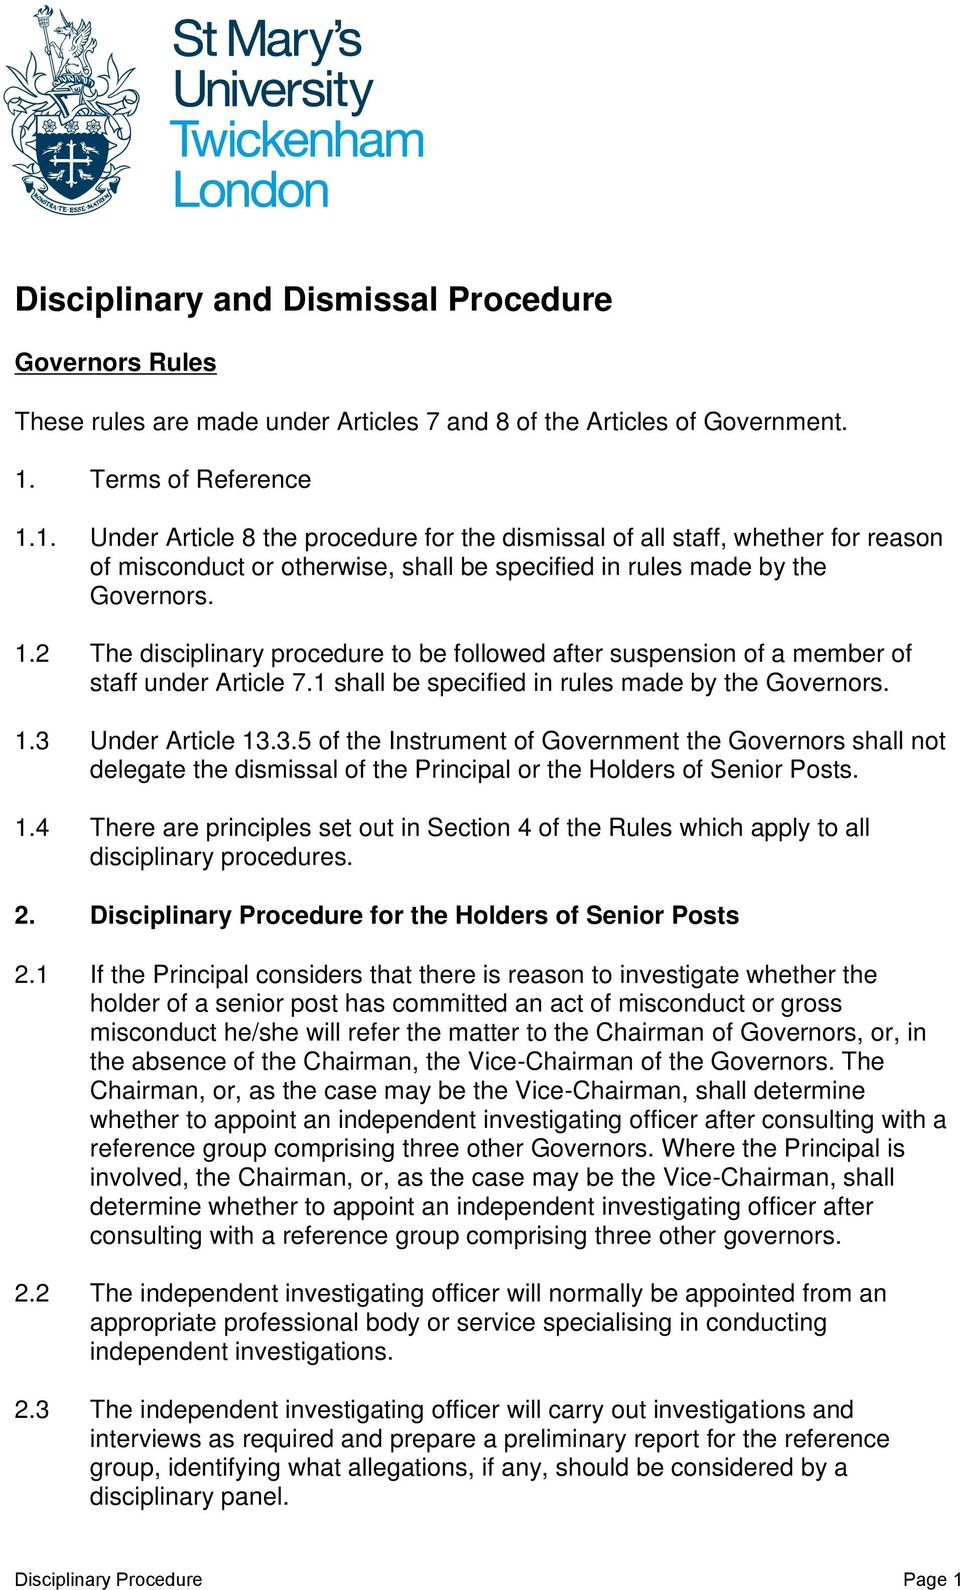 1 shall be specified in rules made by the Governors. 1.3 Under Article 13.3.5 of the Instrument of Government the Governors shall not delegate the dismissal of the Principal or the Holders of Senior Posts.